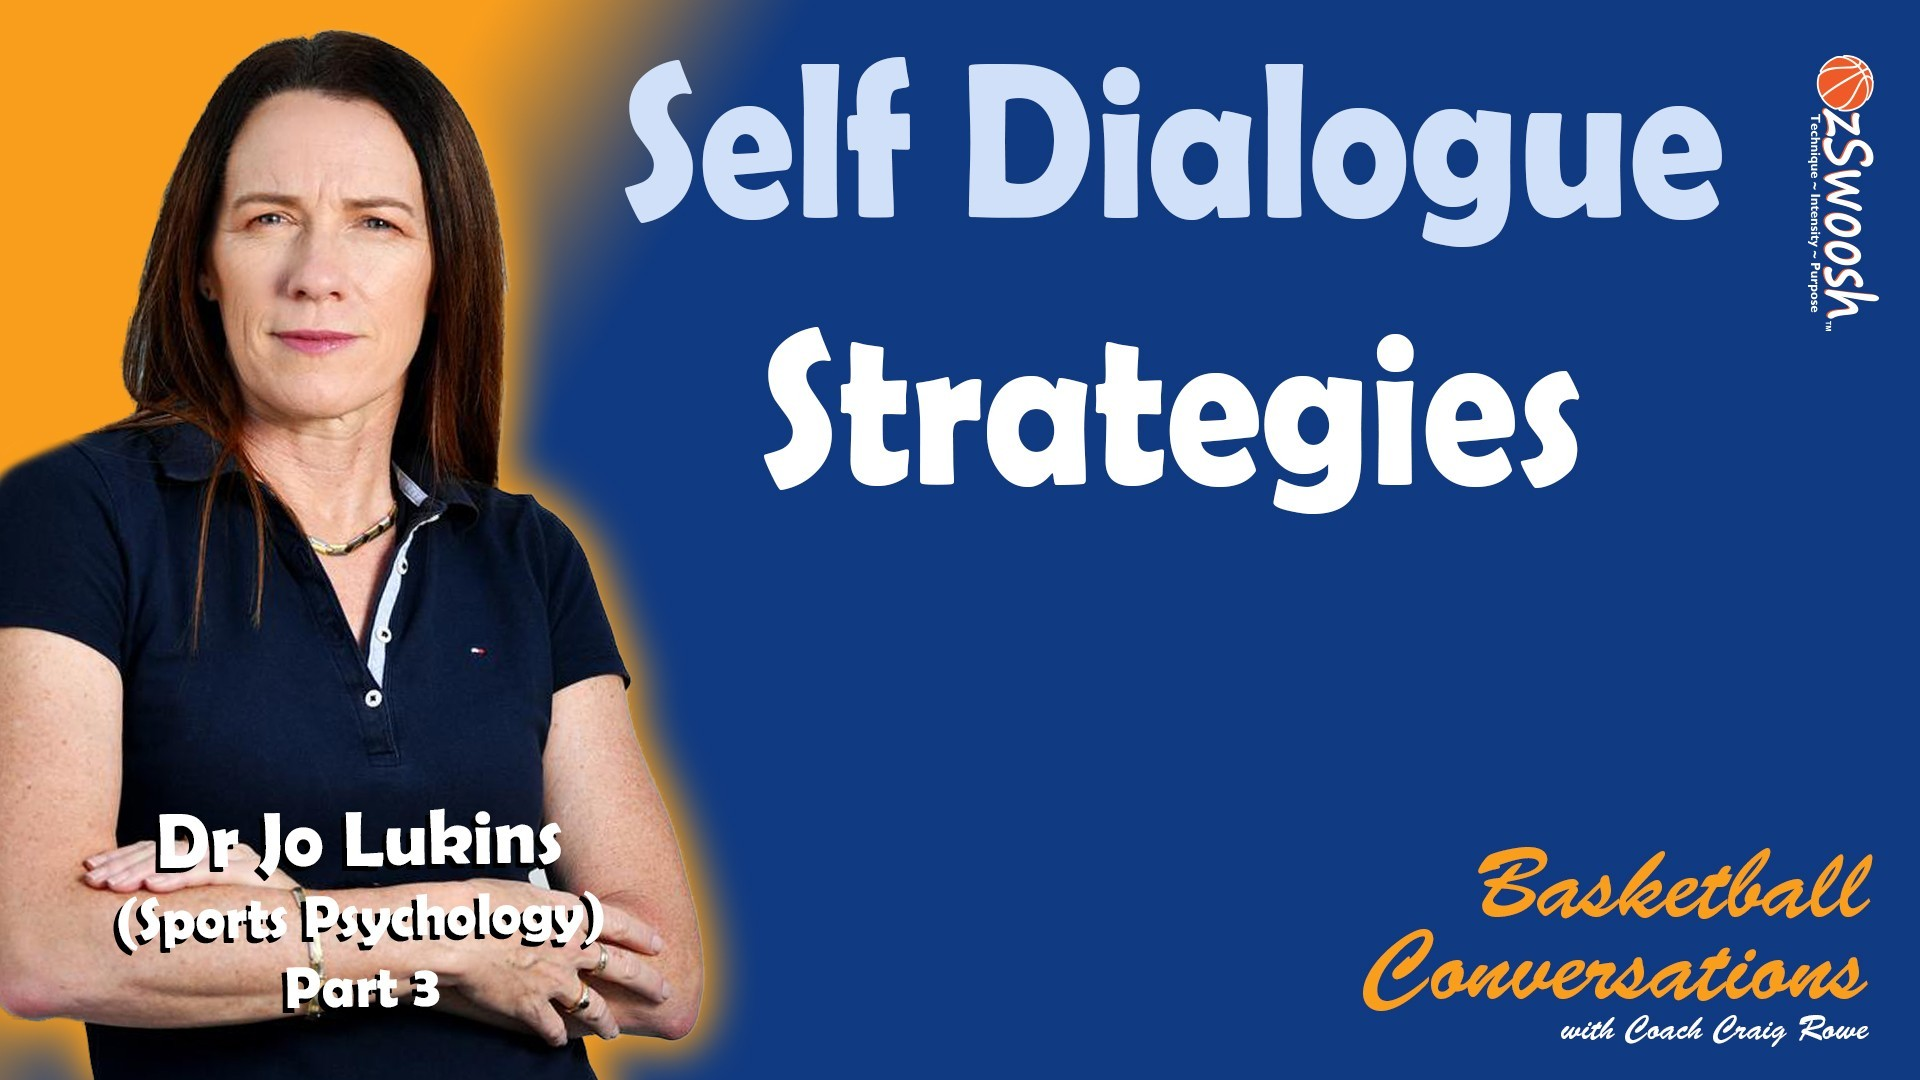 How You Speak to Yourself Matters - Dr Jo Lukins (Pt 3)